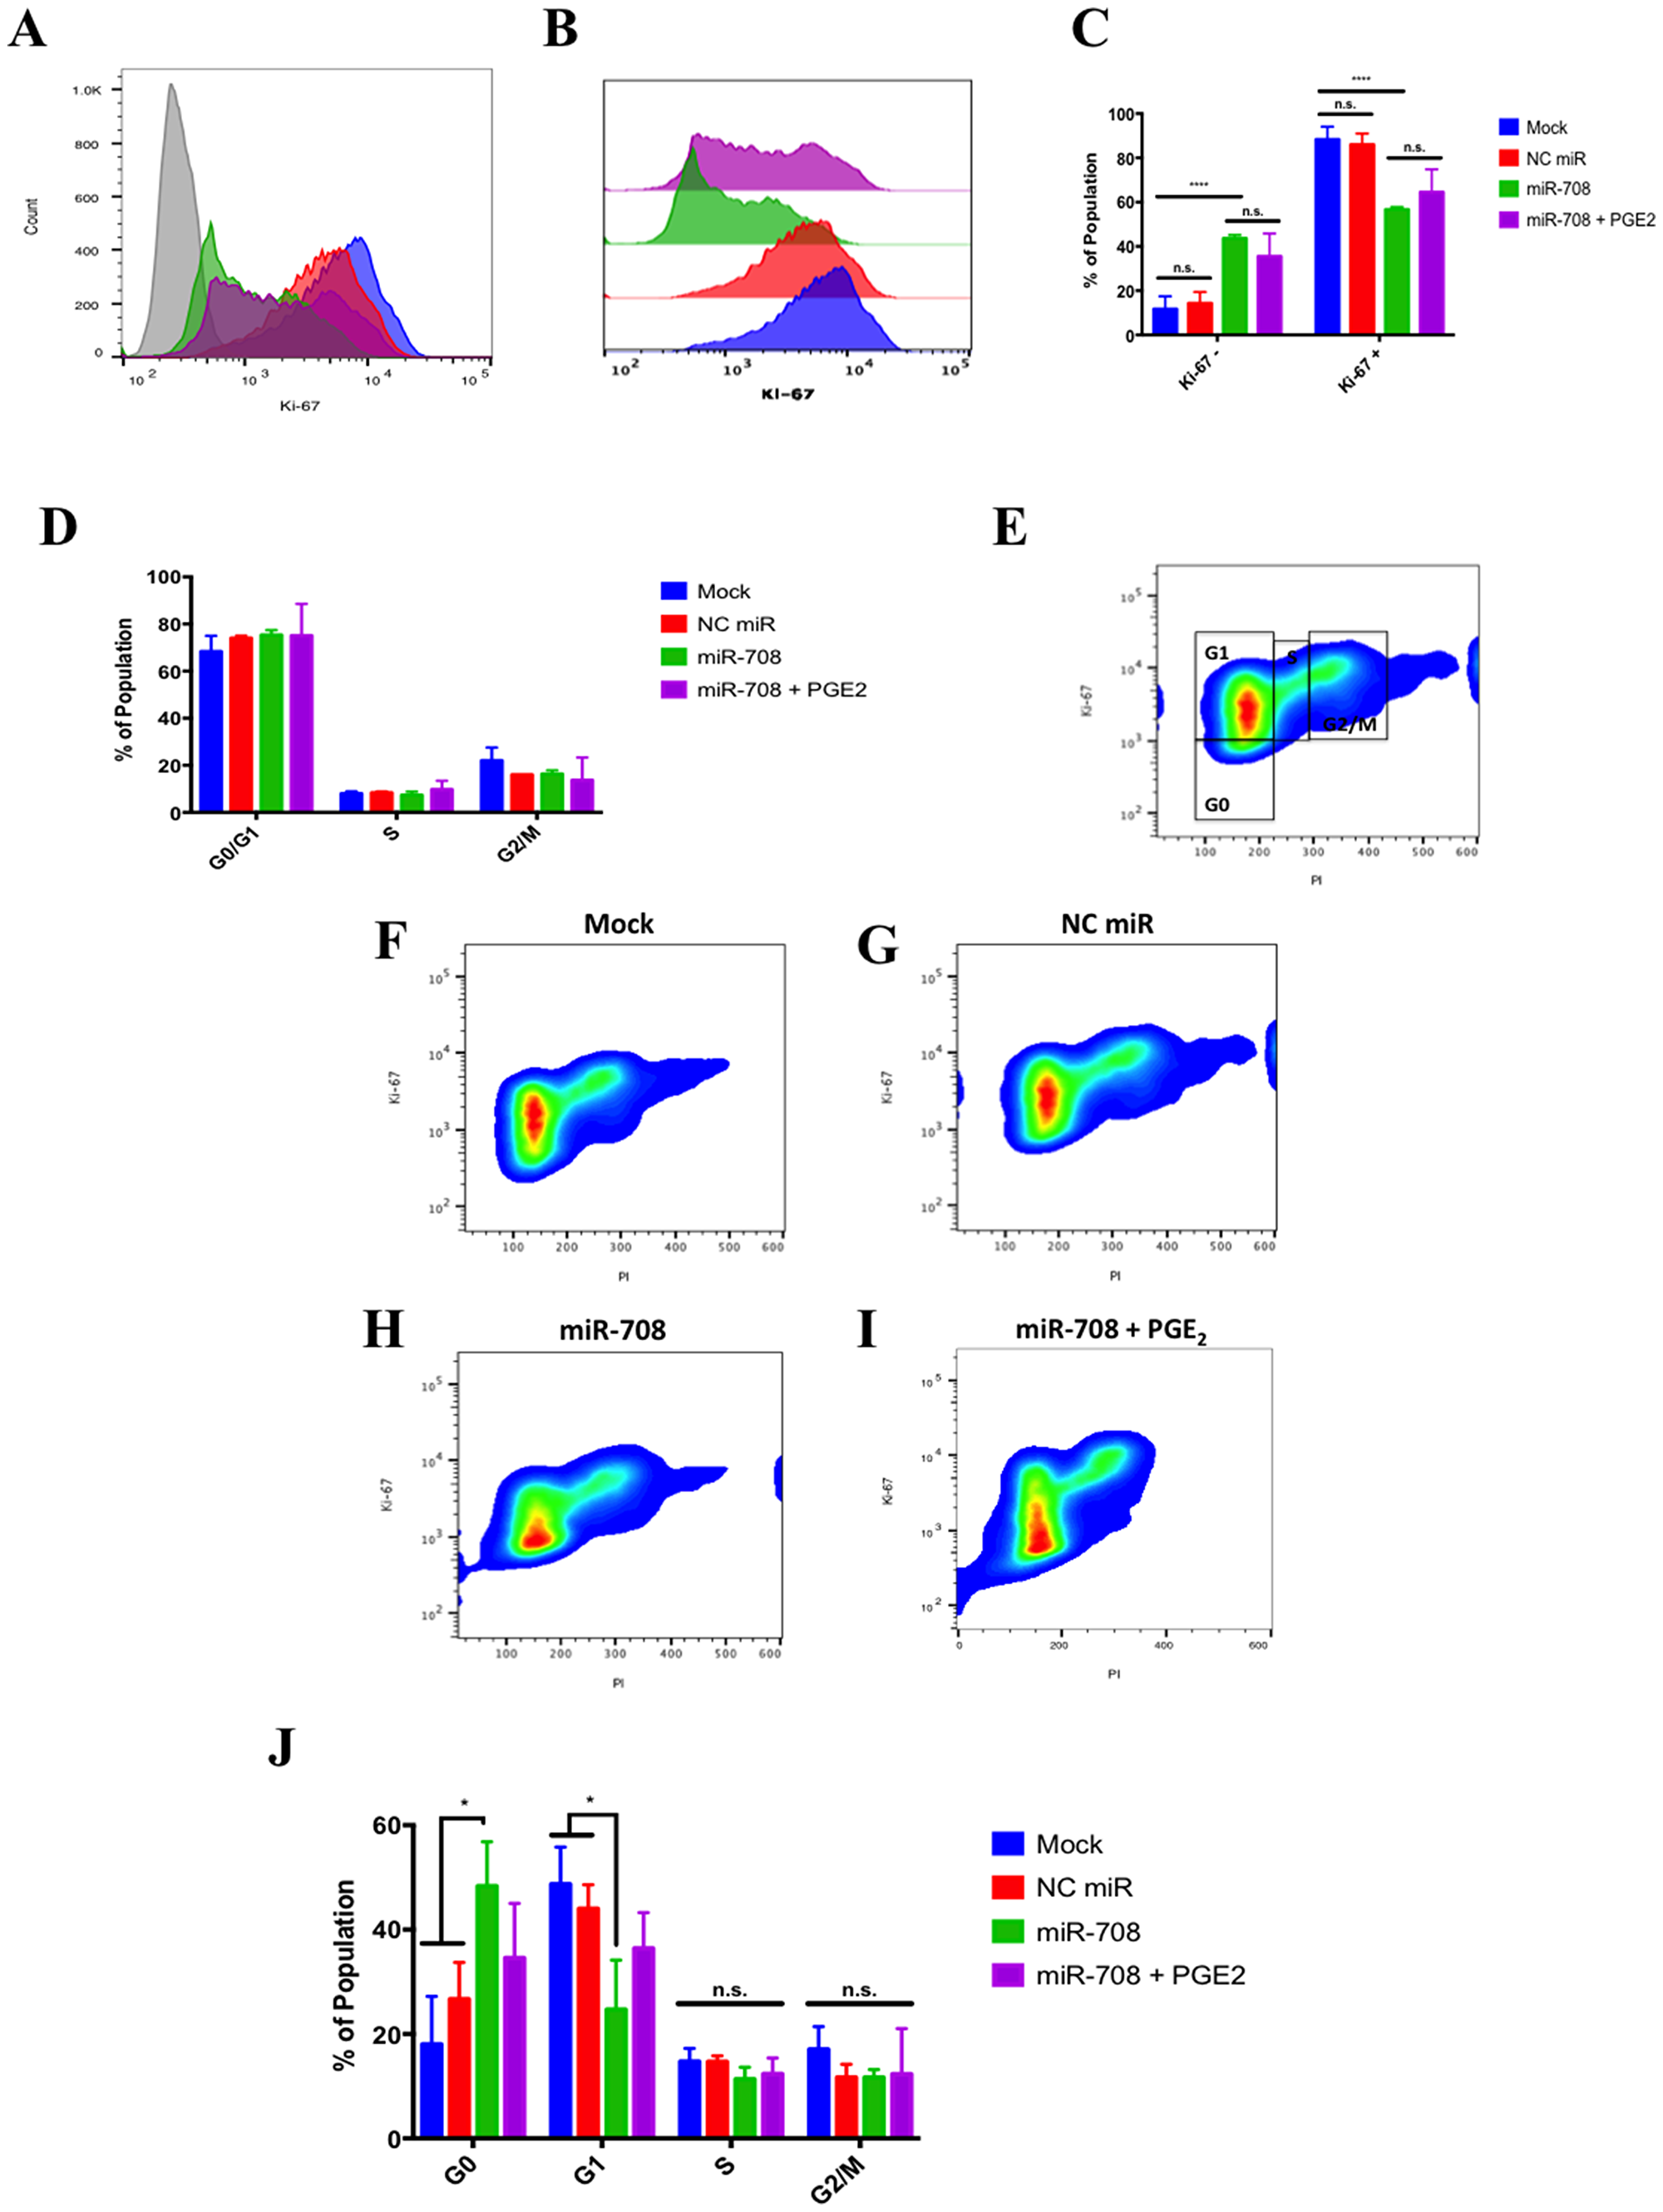 miR-708 attenuates proliferation in A549 cells partially through targeting of AA signaling.